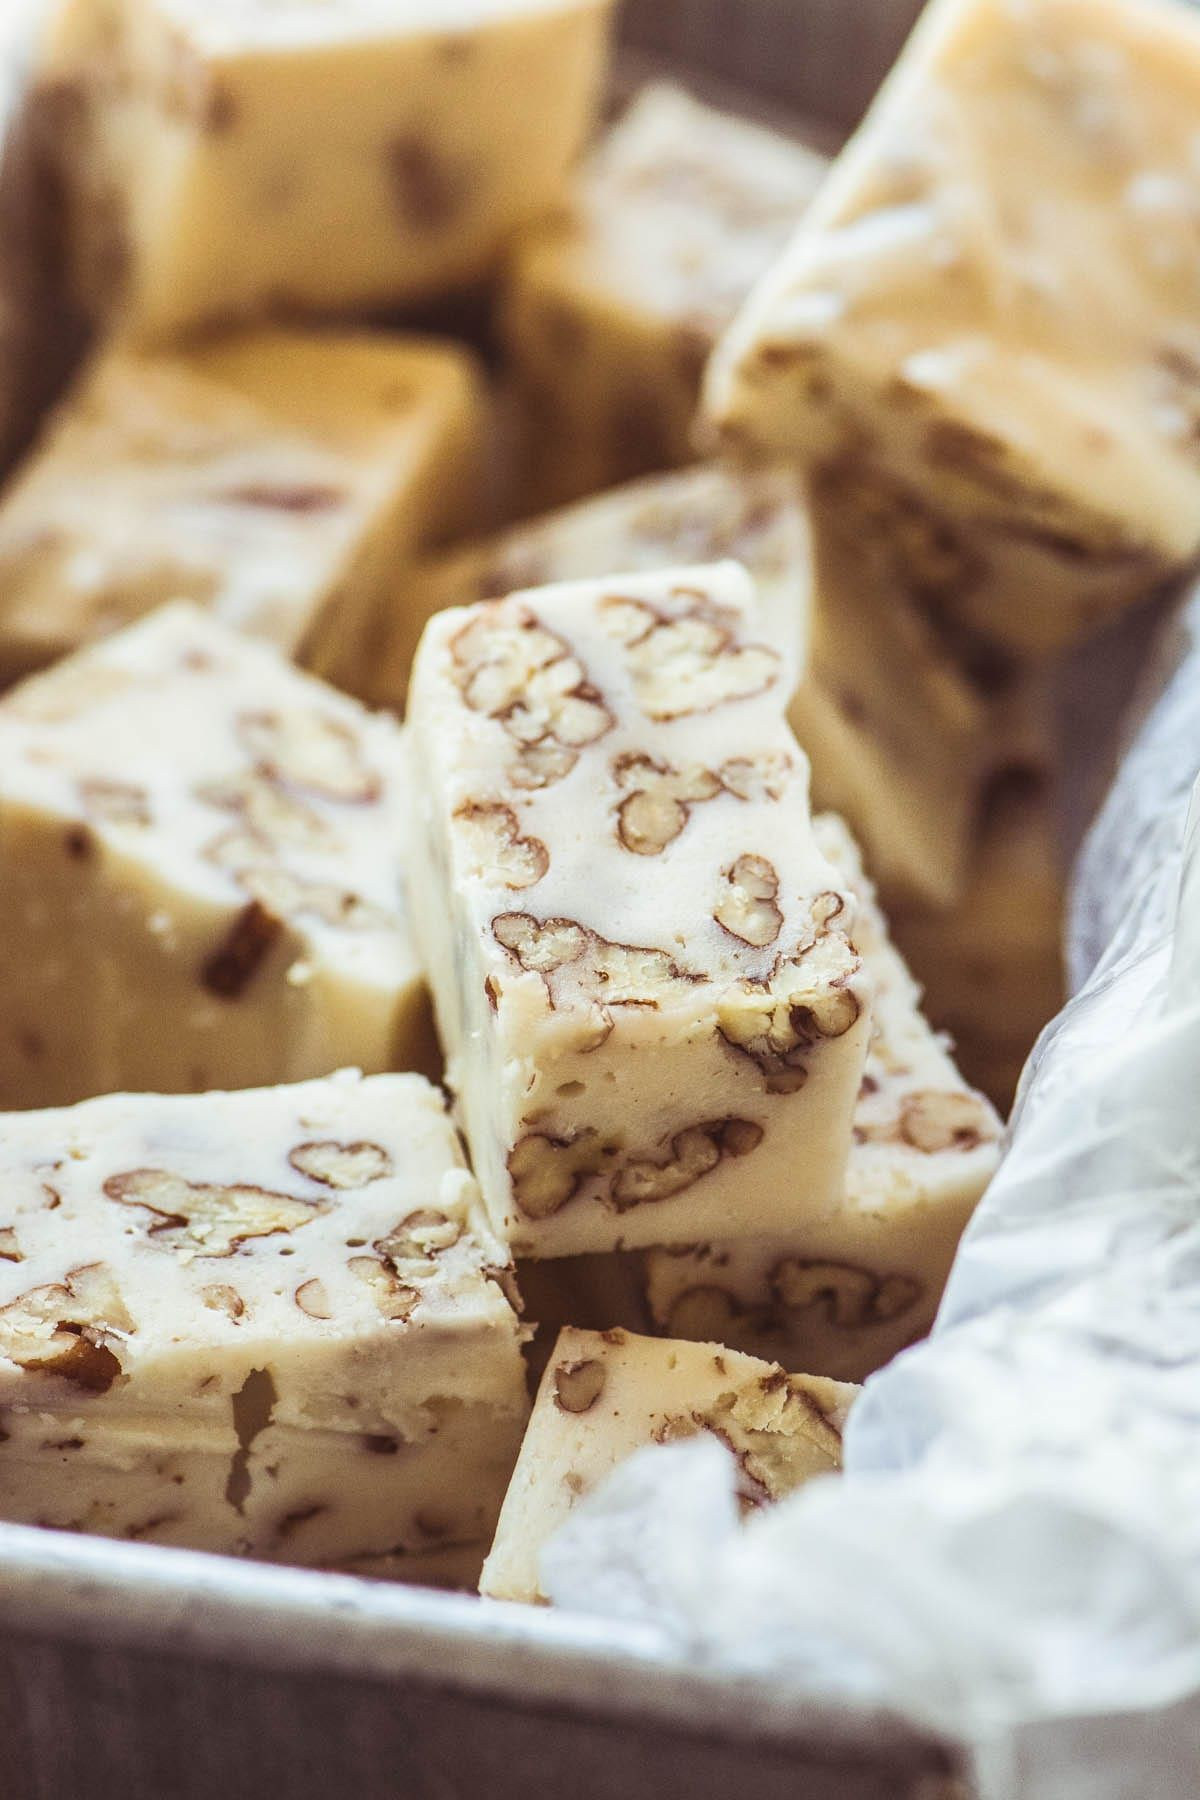 Pecan Buttermilk Fudge This Creamy White Fudge Has Got A Sweet Tangy Flavor Like Nothing Else I Ve Ever Tast With Images Buttermilk Fudge Recipe Fudge Recipes Fudge Easy